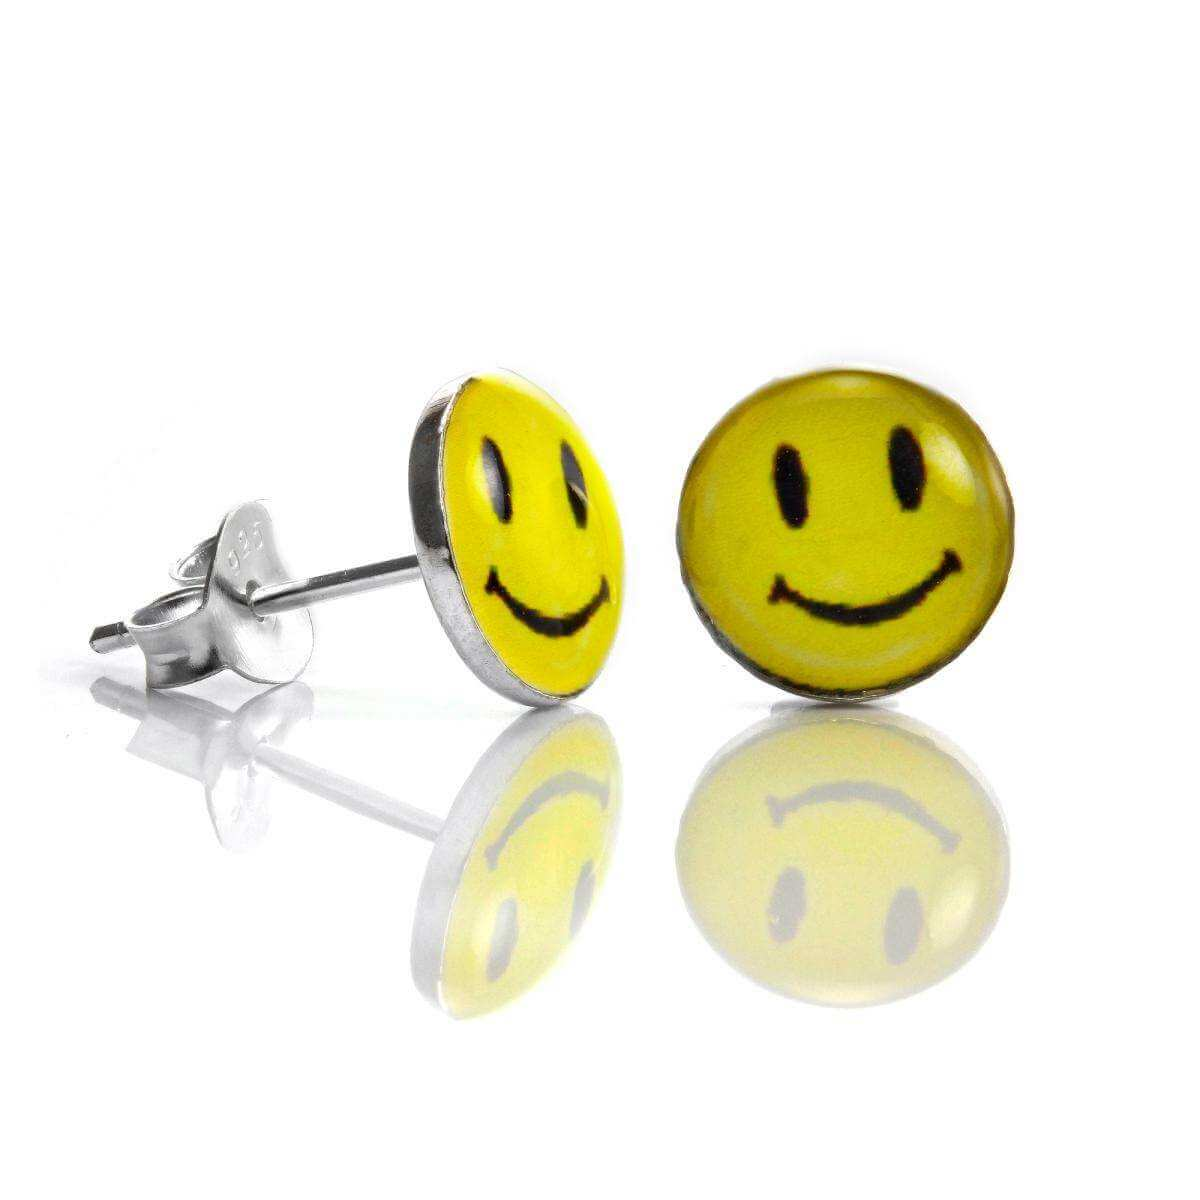 Sterling Silver 8mm Yellow Smiley Face Stud Earrings